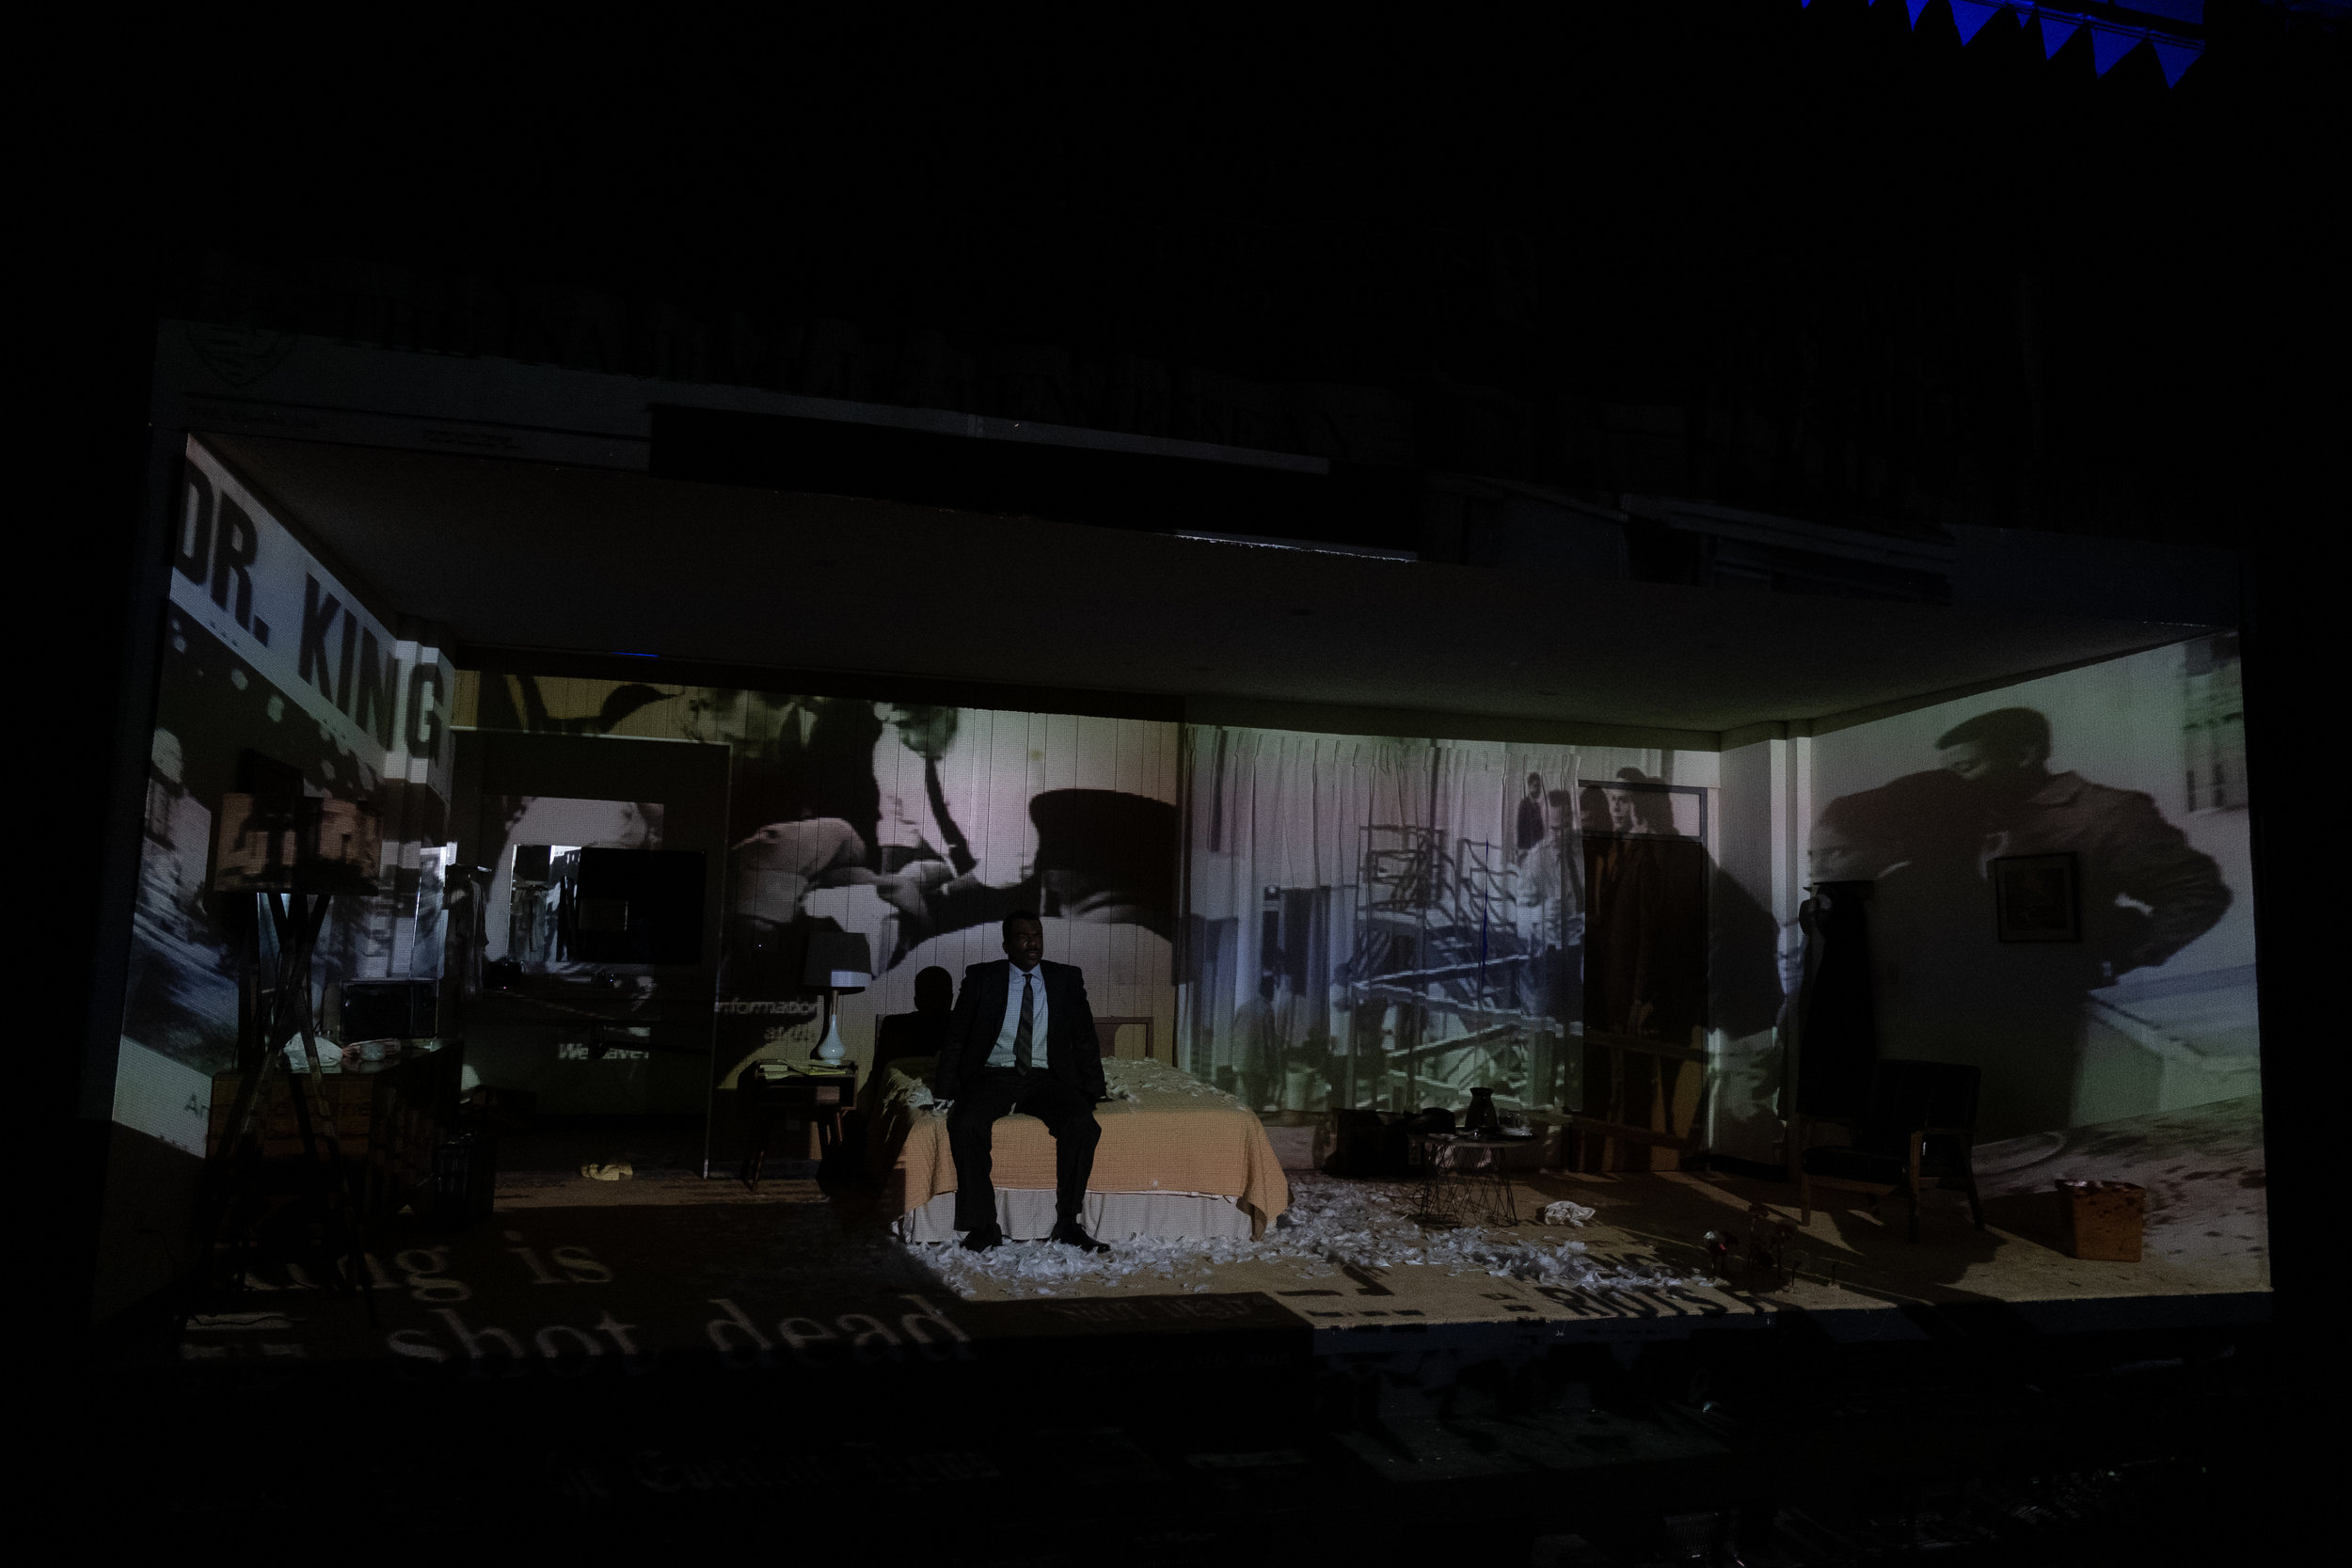 THE MOUNTAINTOP by Katori Hall. Scenic Design by ALEX CALLE. Lighting Design by JM MONTECALVO. Sound Design by ROBERT A. RAMIREZ. Props by JOHN M. McELVENEY. Projection Design by: YEE EUN NAM. Costume Design by WENDELL CARMICHAEL.  GILBERT GLENN BROWN as Dr Martin Luther King Jr